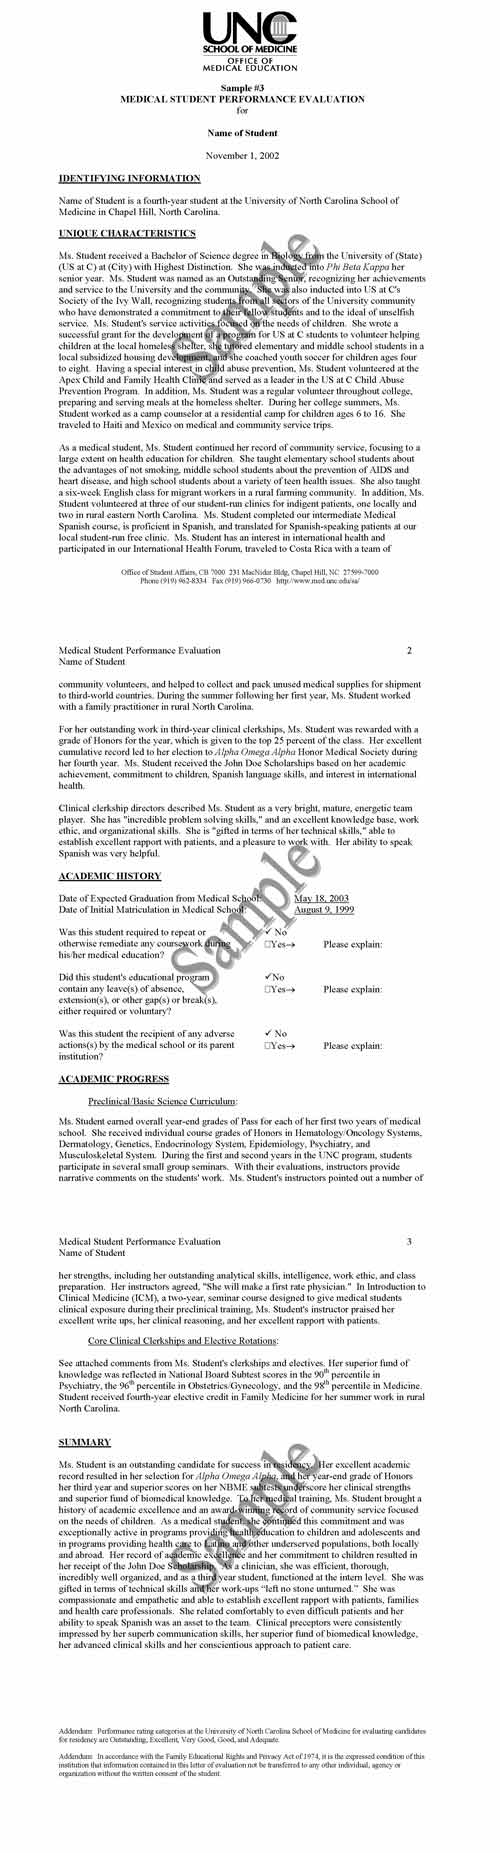 persuasive essay about mercy killing research paper academic  persuasive essay about mercy killing